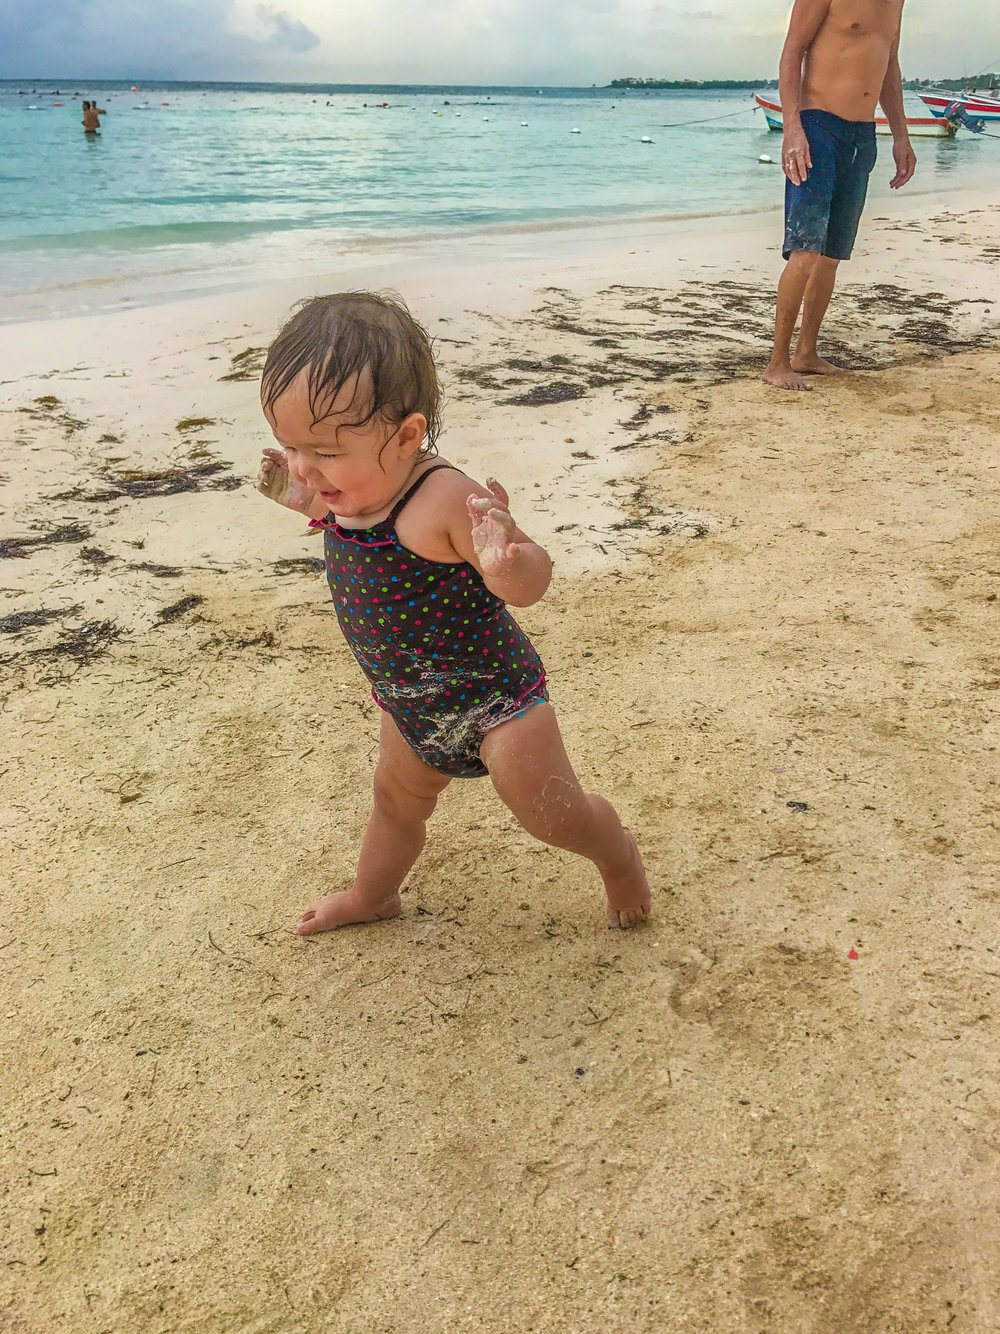 My niece enjoying Akumal Beach